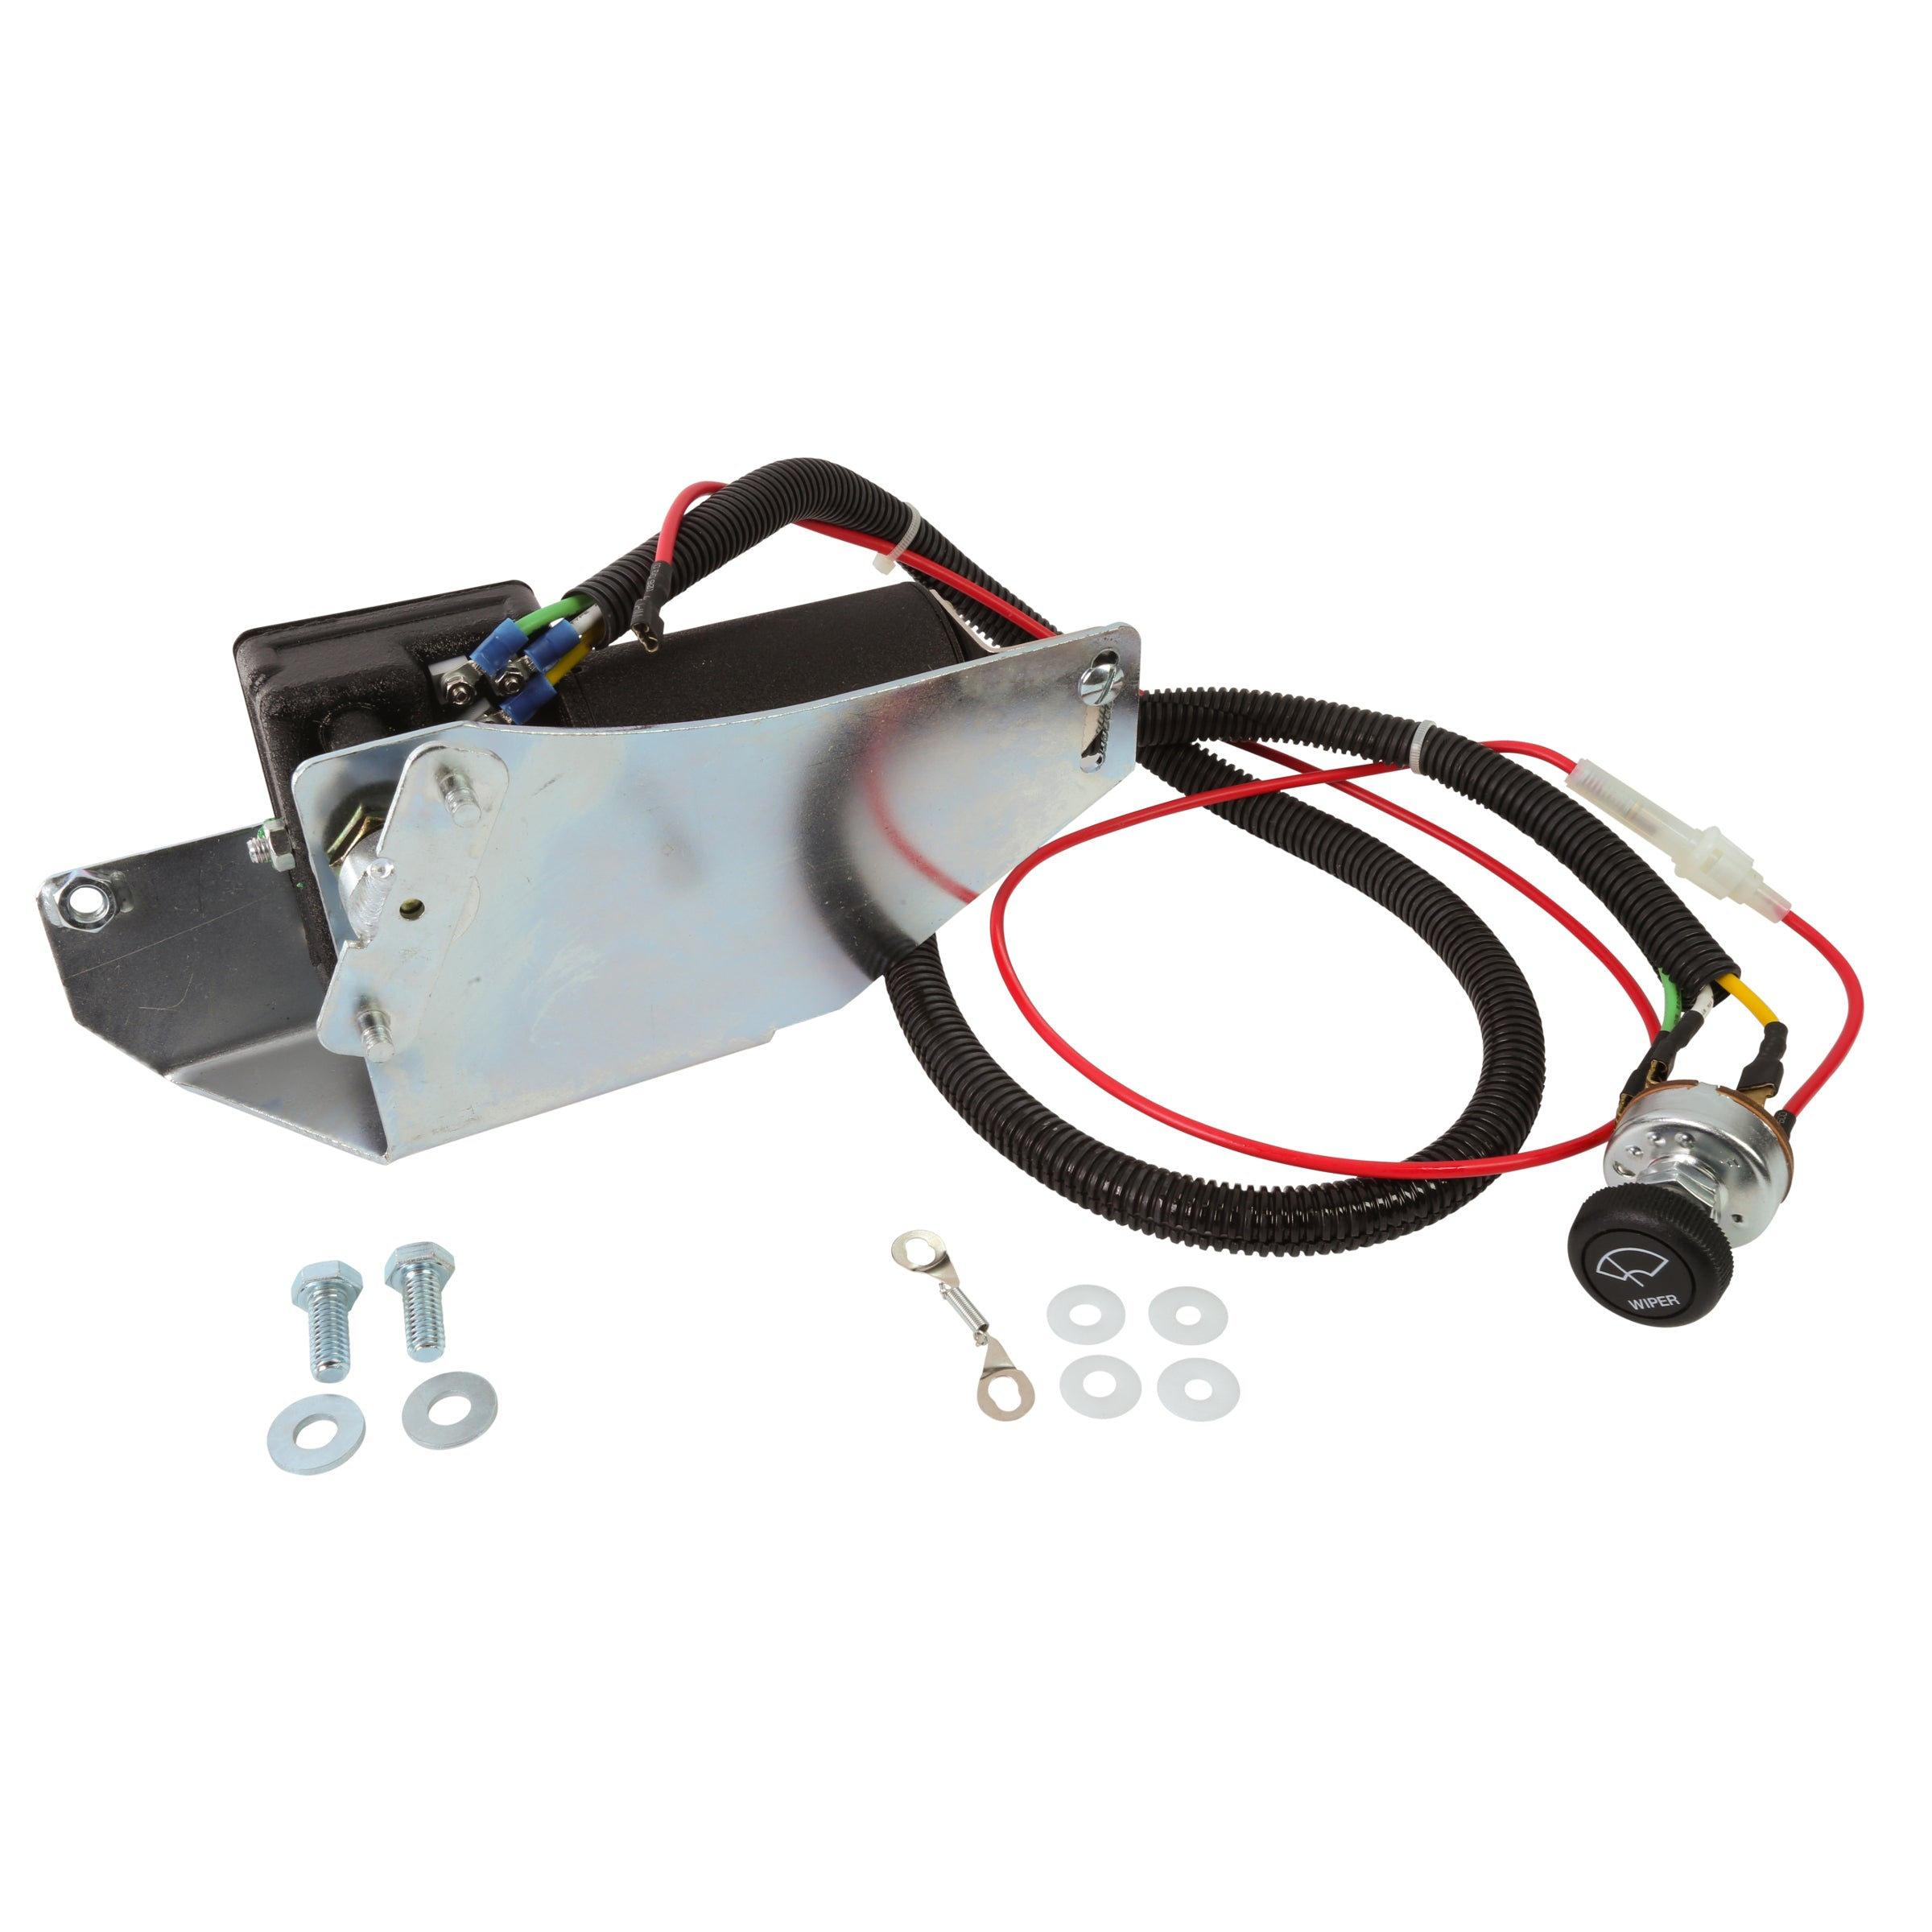 Wiper Motor Conversion Kit (12 Volt) • 1940 Ford Passenger